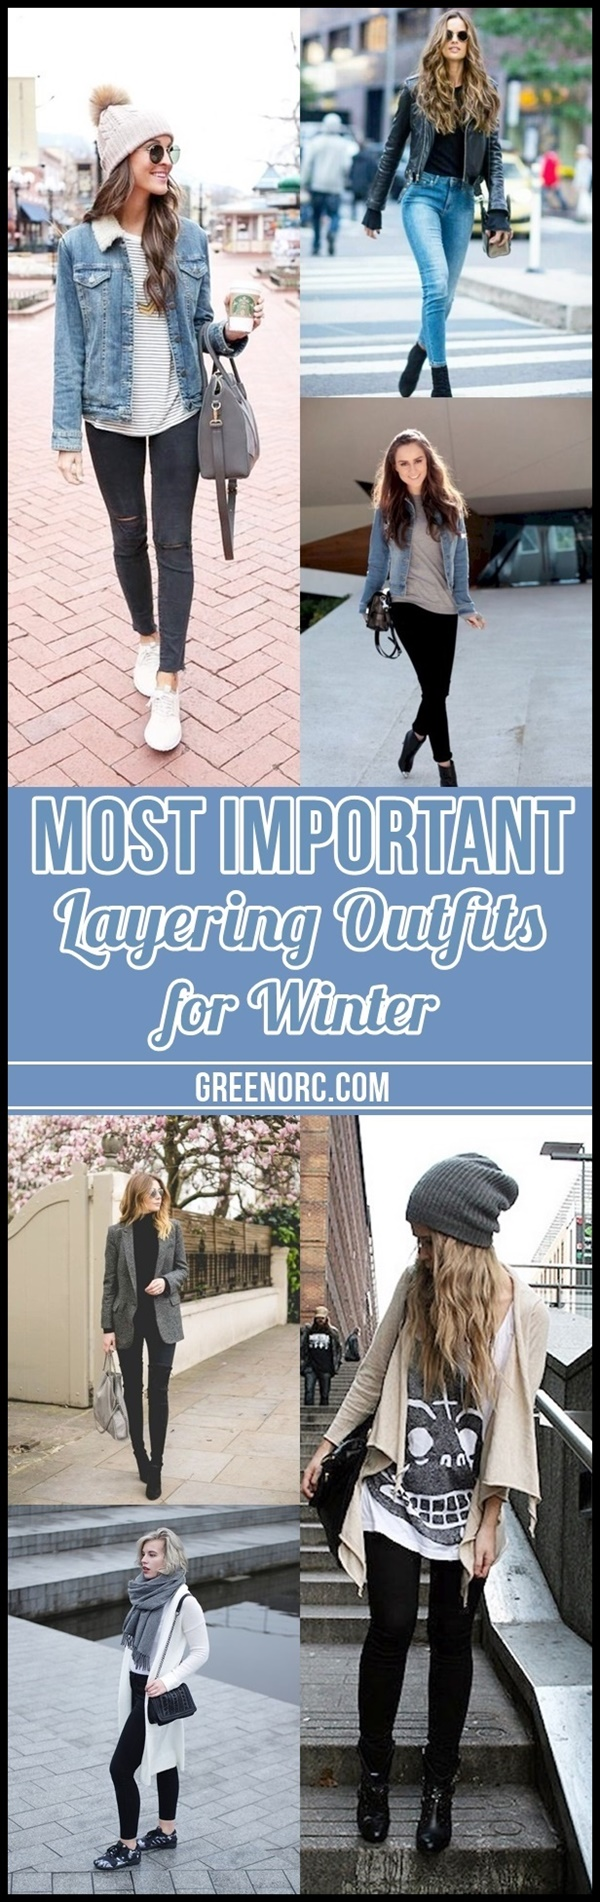 Most Important Layering Outfits for Winter